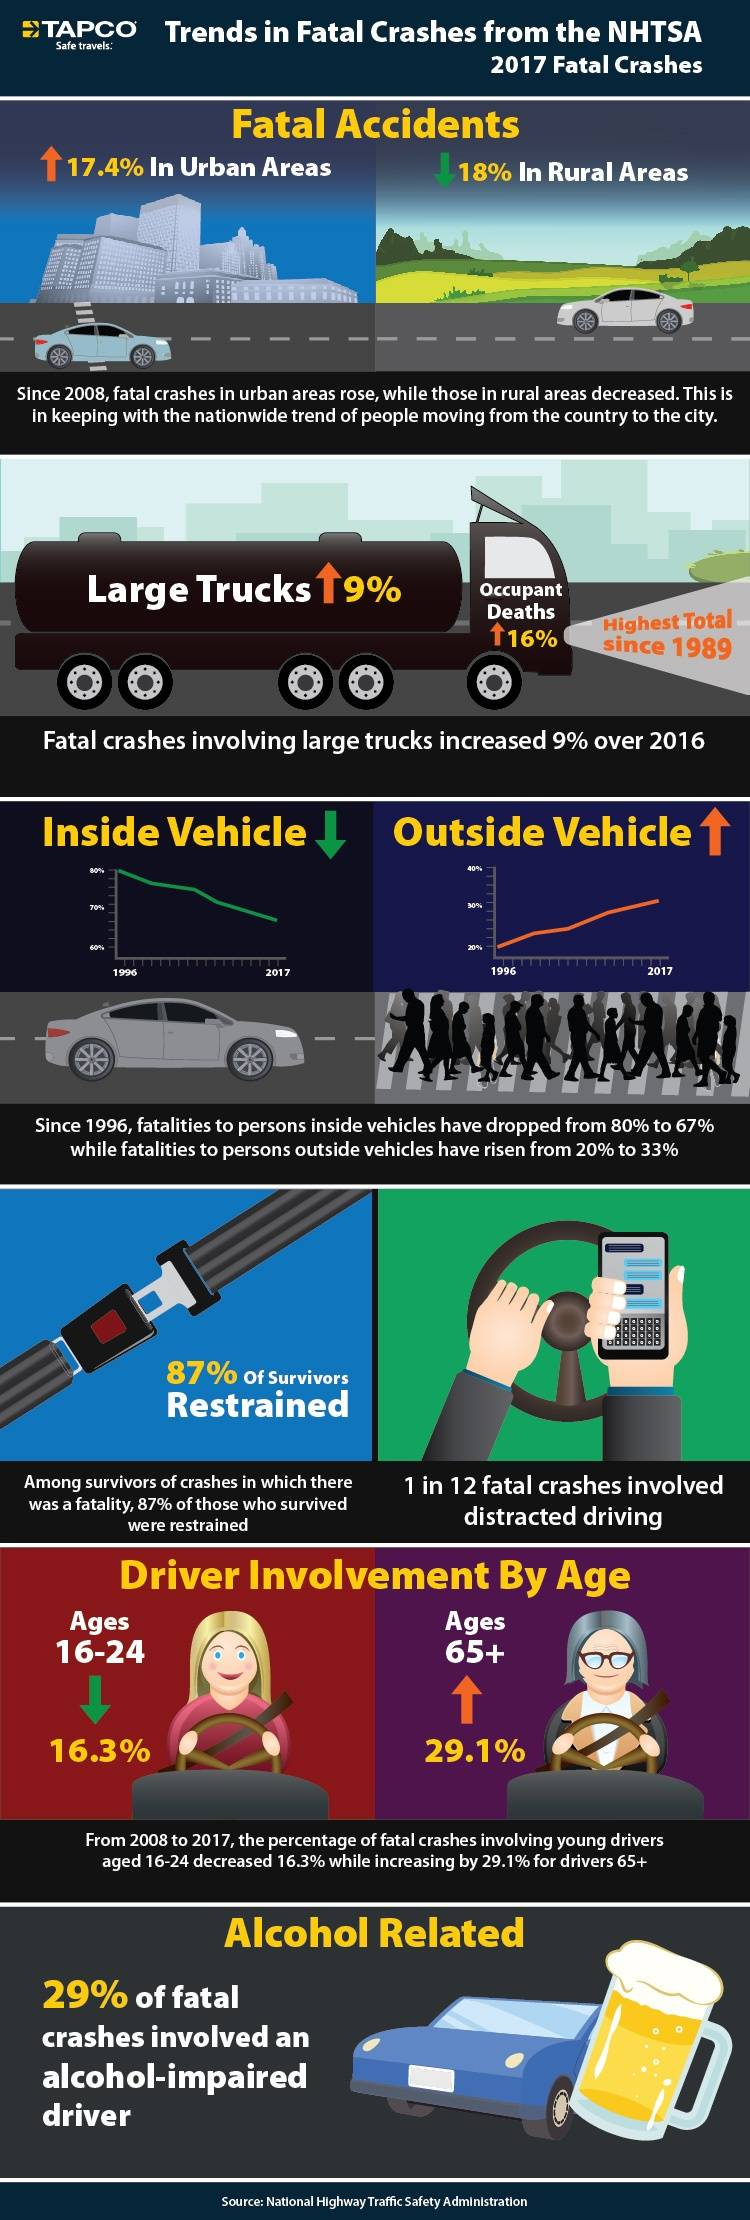 Trends in fatal crashes from the NHTSA